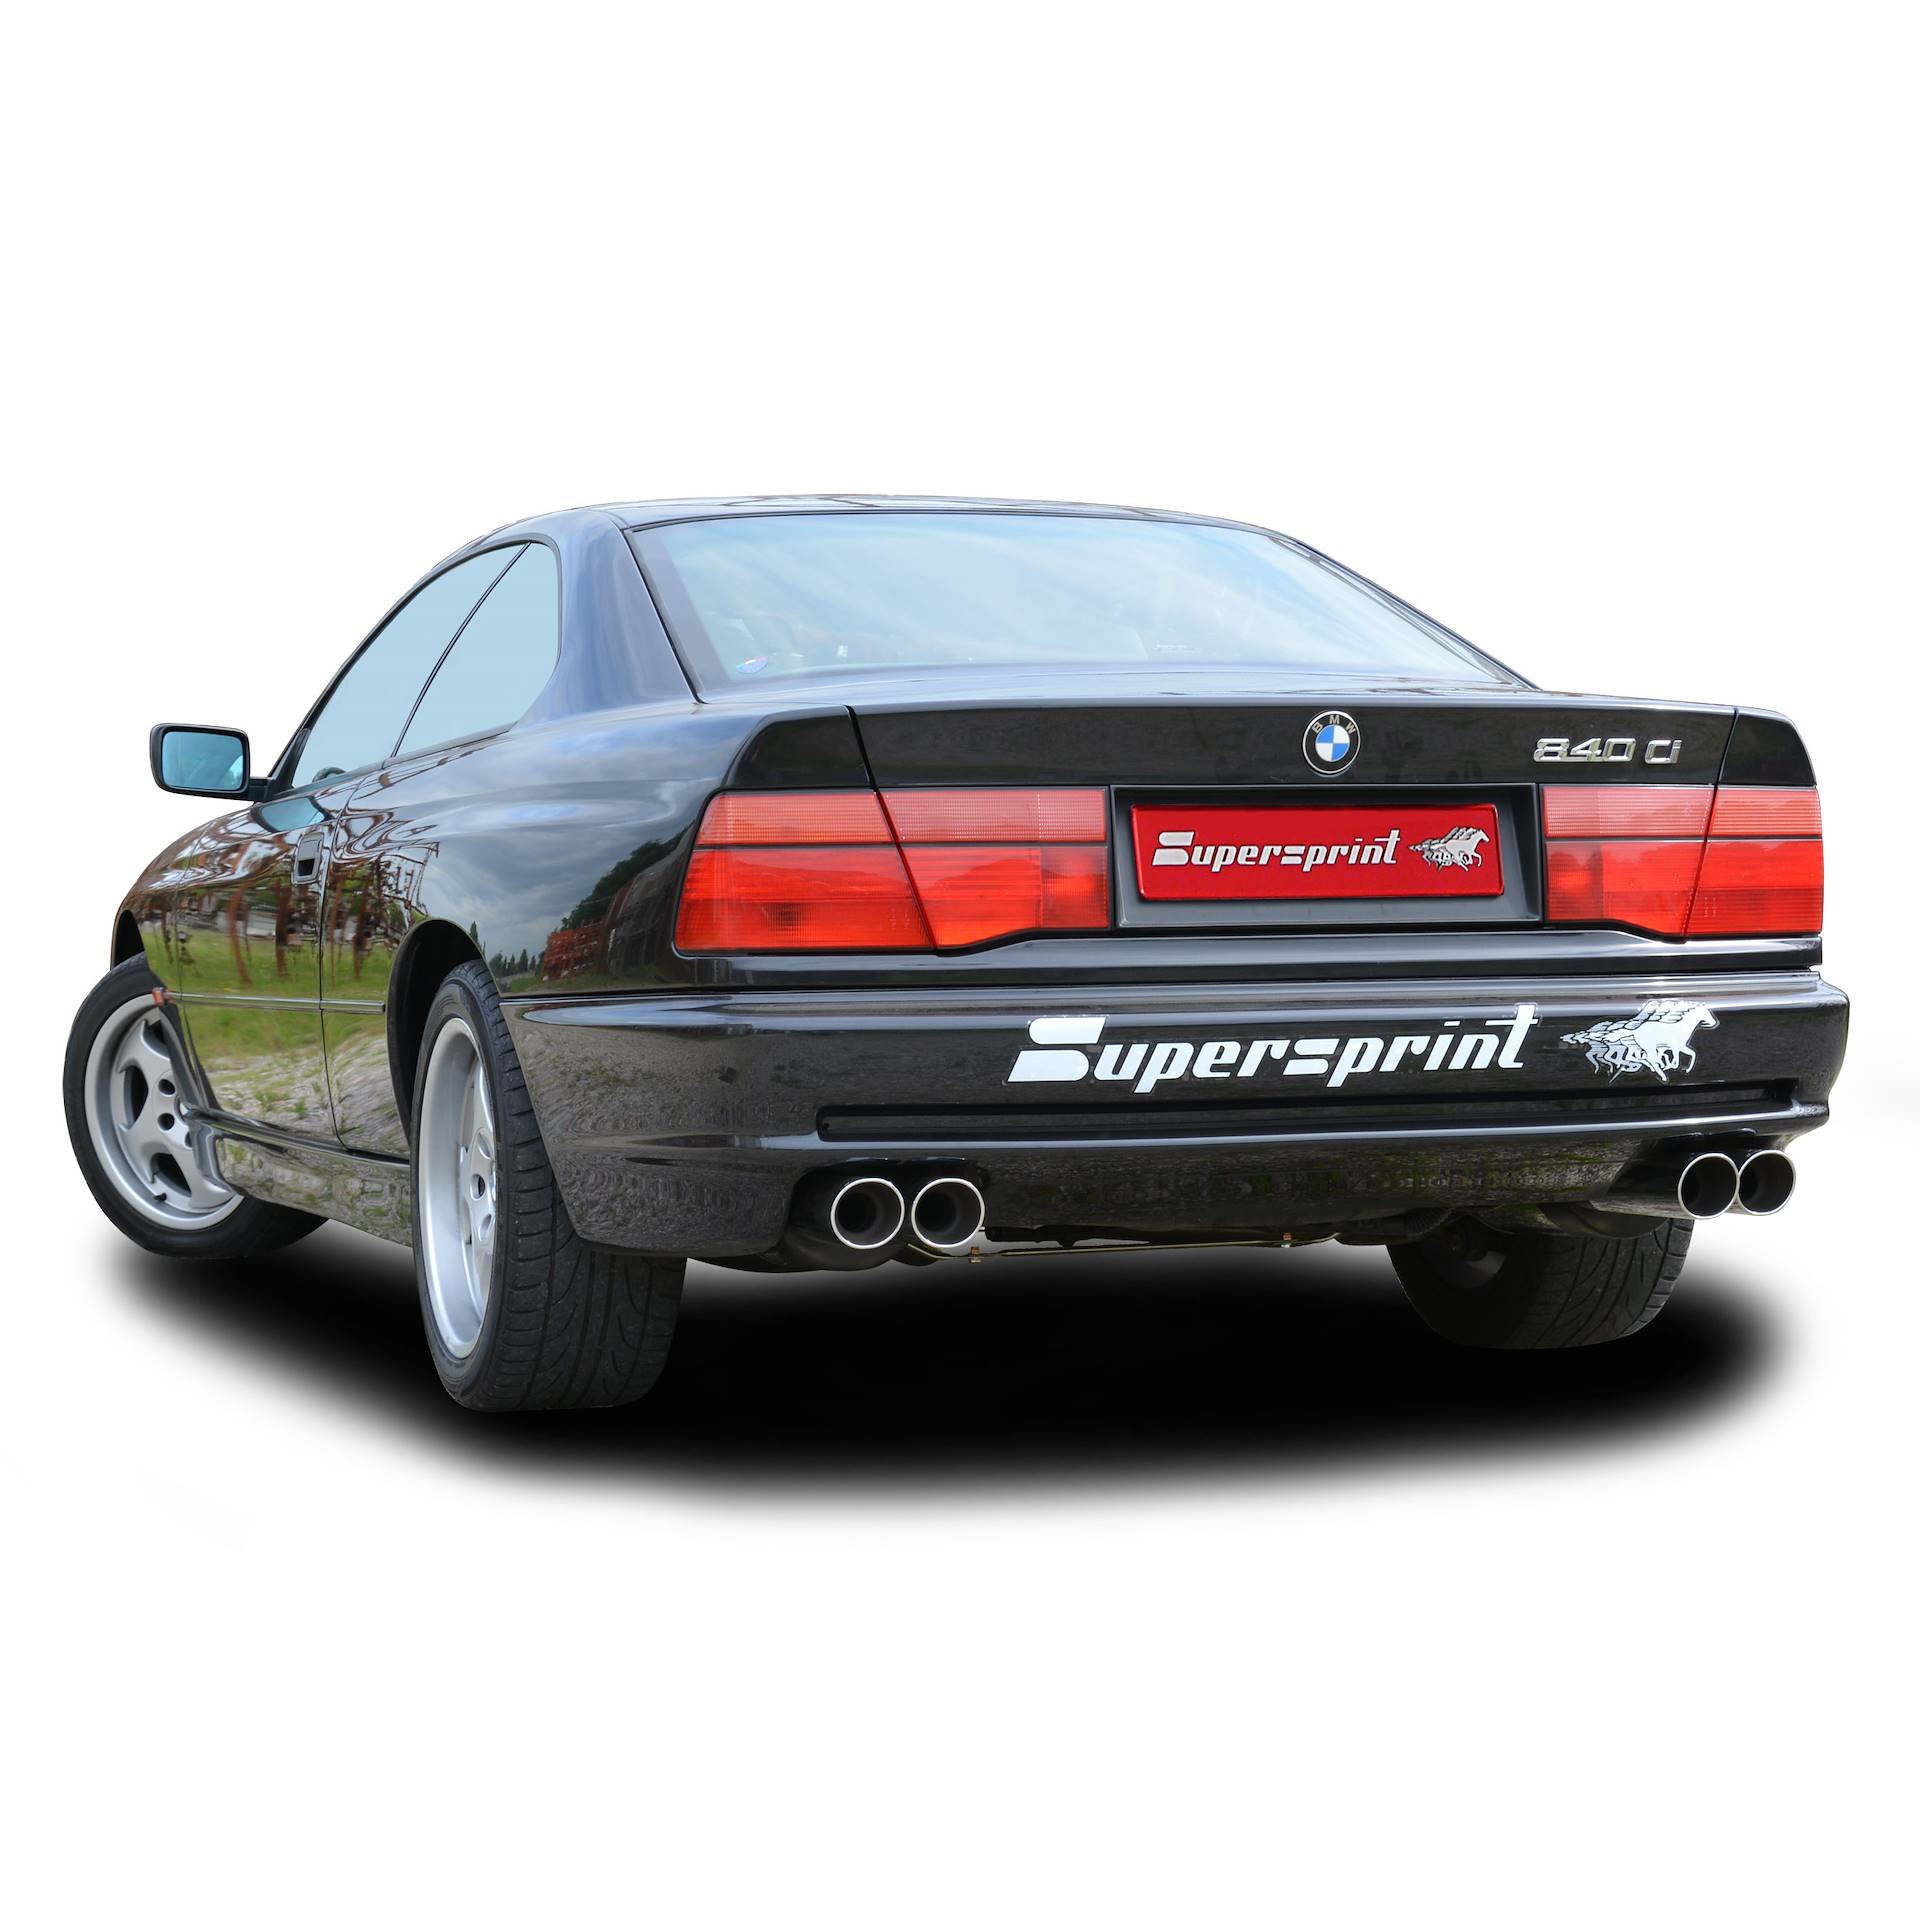 Supersprint exhaust system for BMW E31 840Ci V8 (M62)